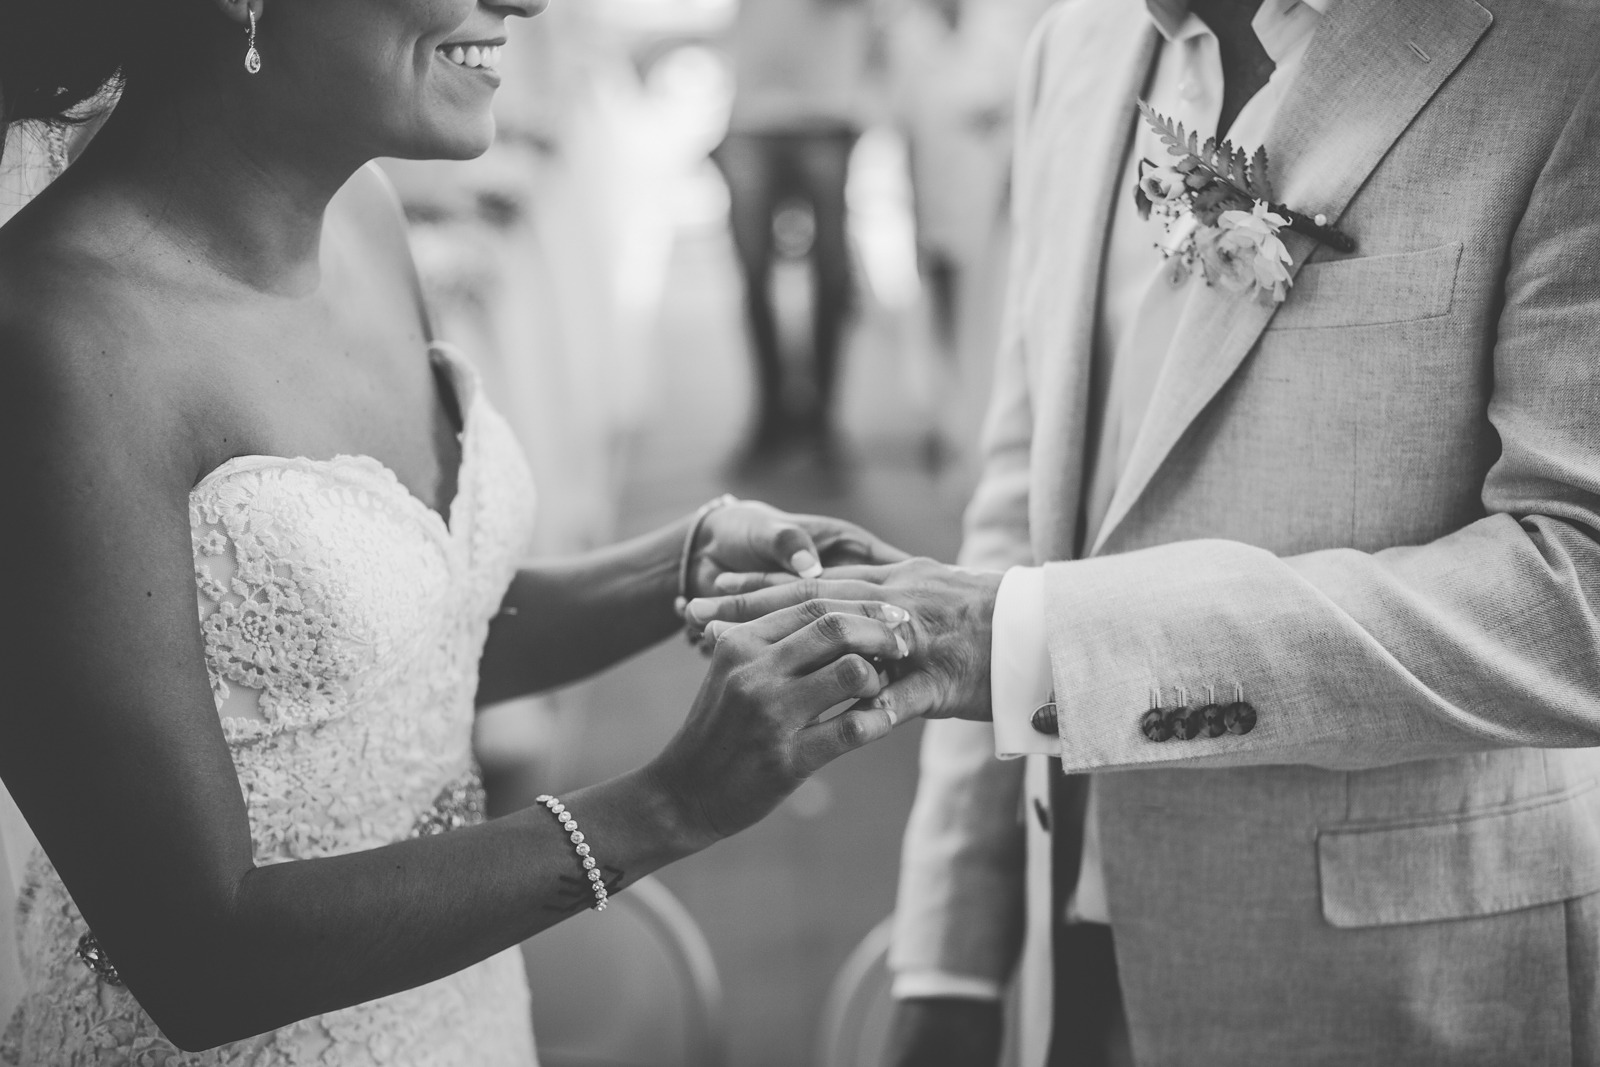 ceremony-weddings-rings-bride-groom-smile-church